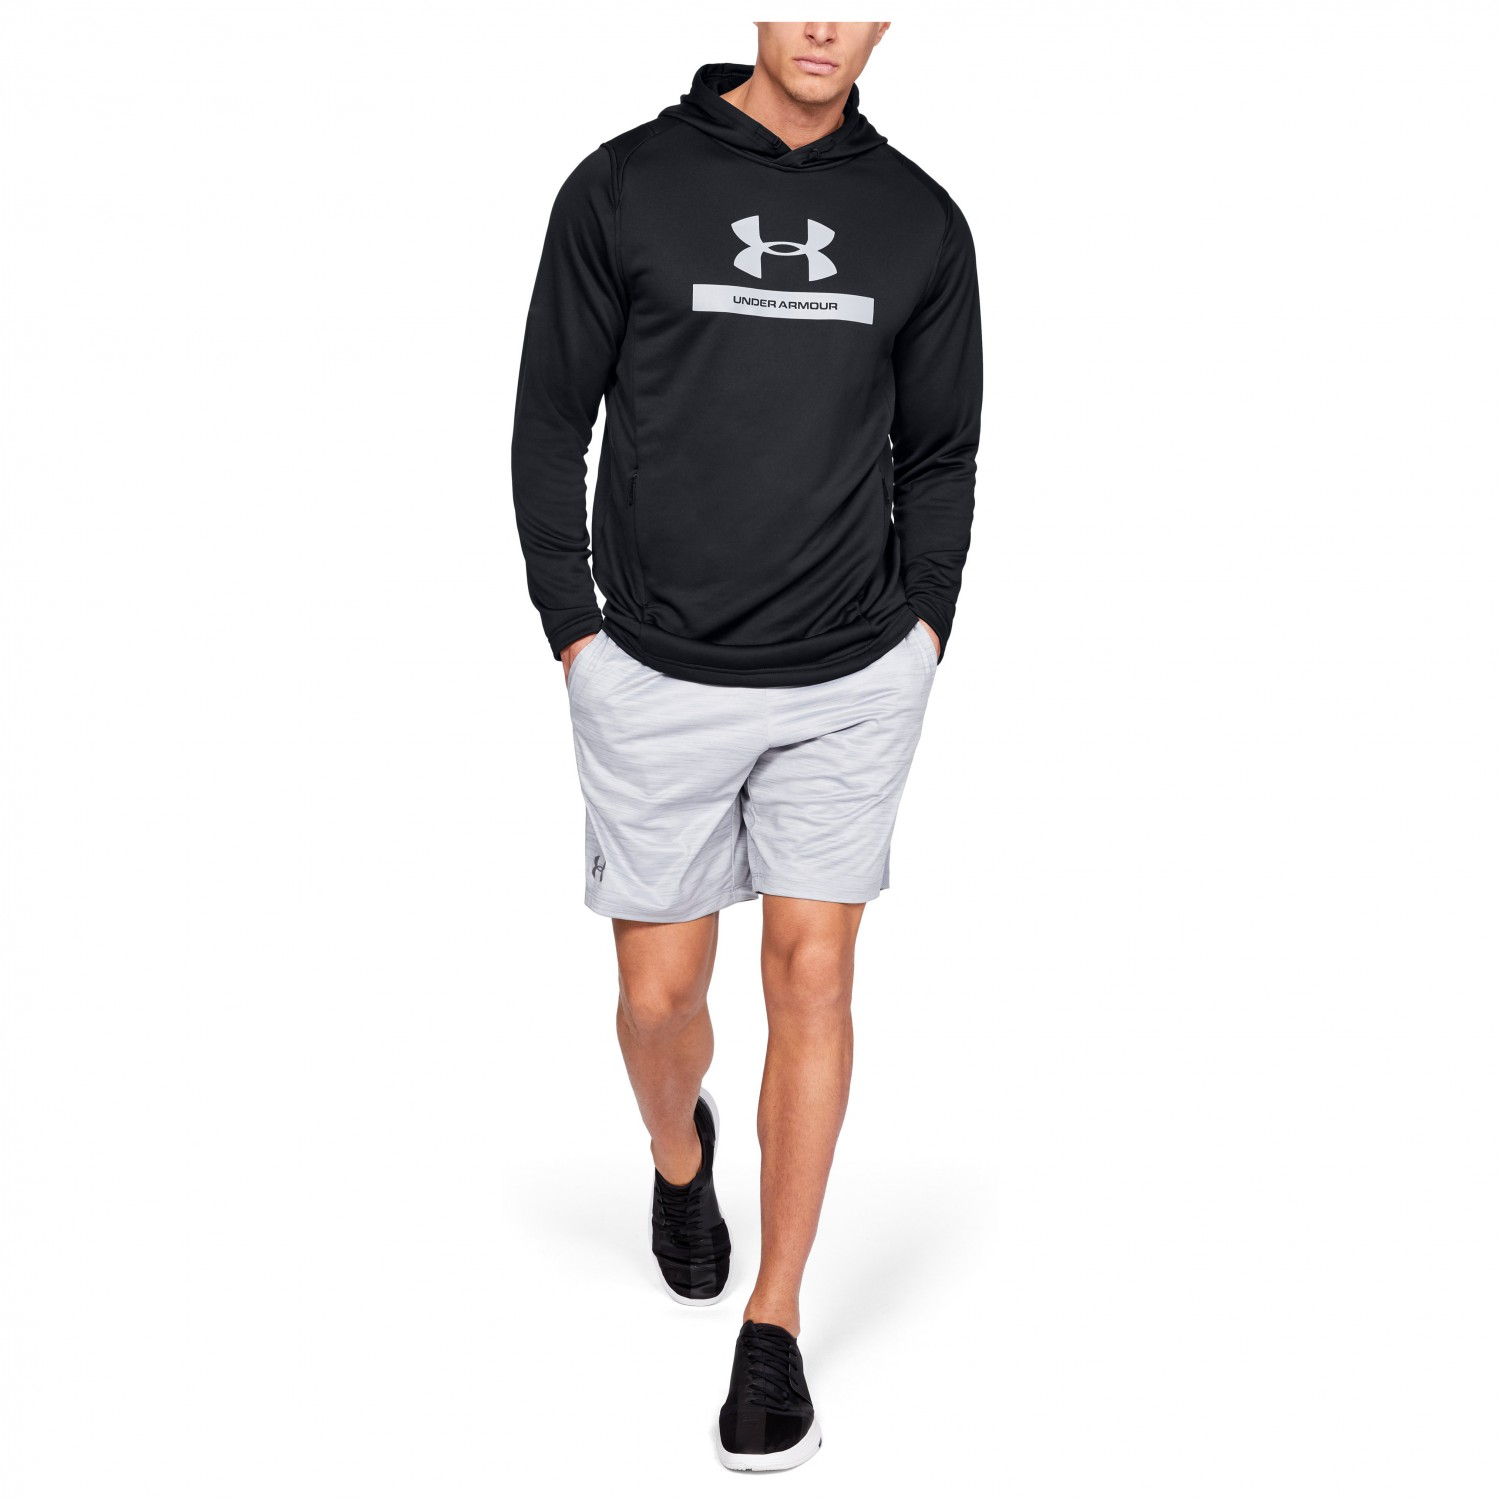 ed5754de0 Under Armour MK1 Terry Graphic Hoodie - Sport Shirt Men's | Buy ...